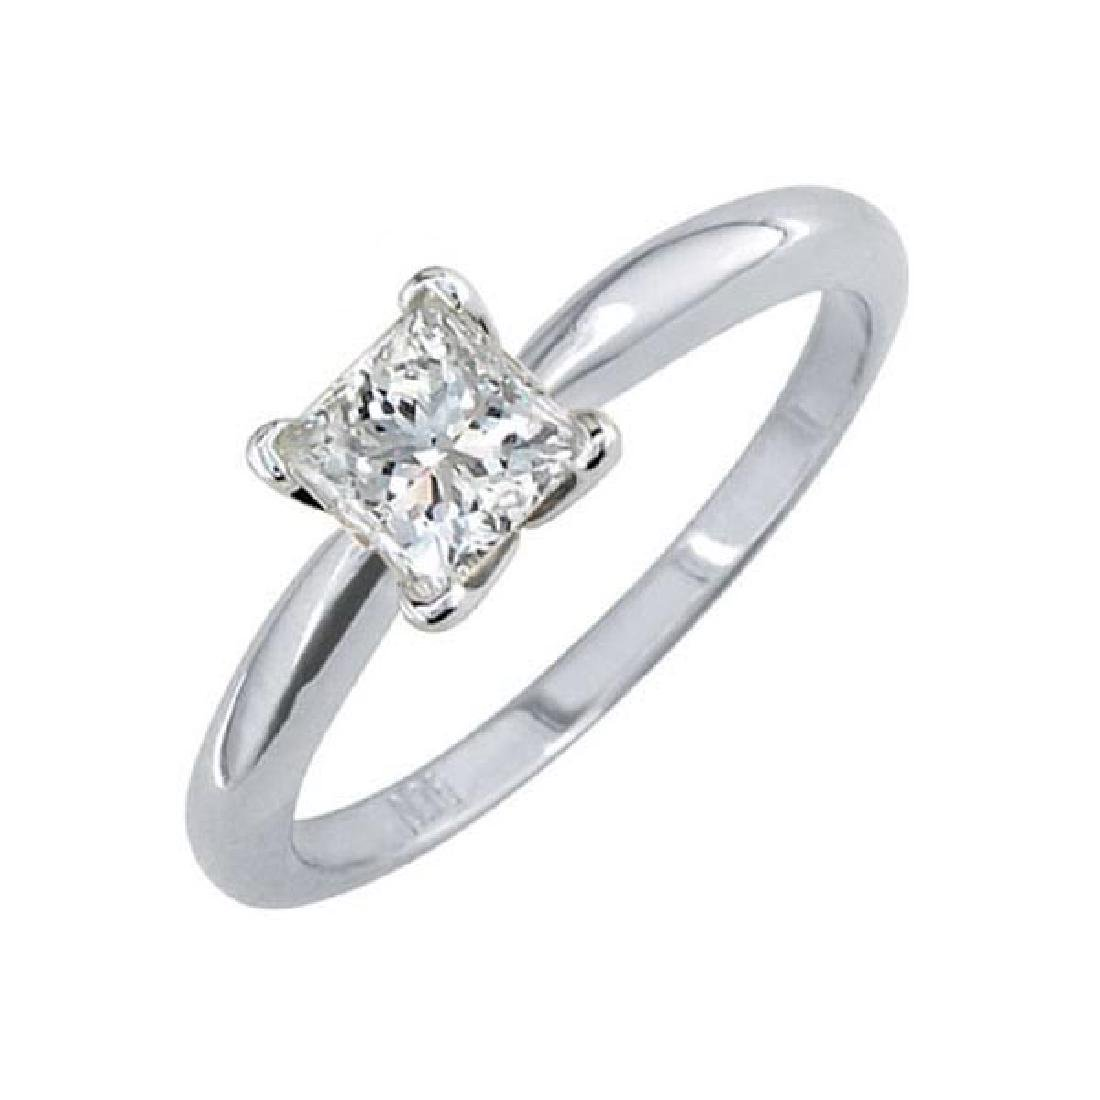 Certified 0.48 CTW Princess Diamond Solitaire 14k Ring